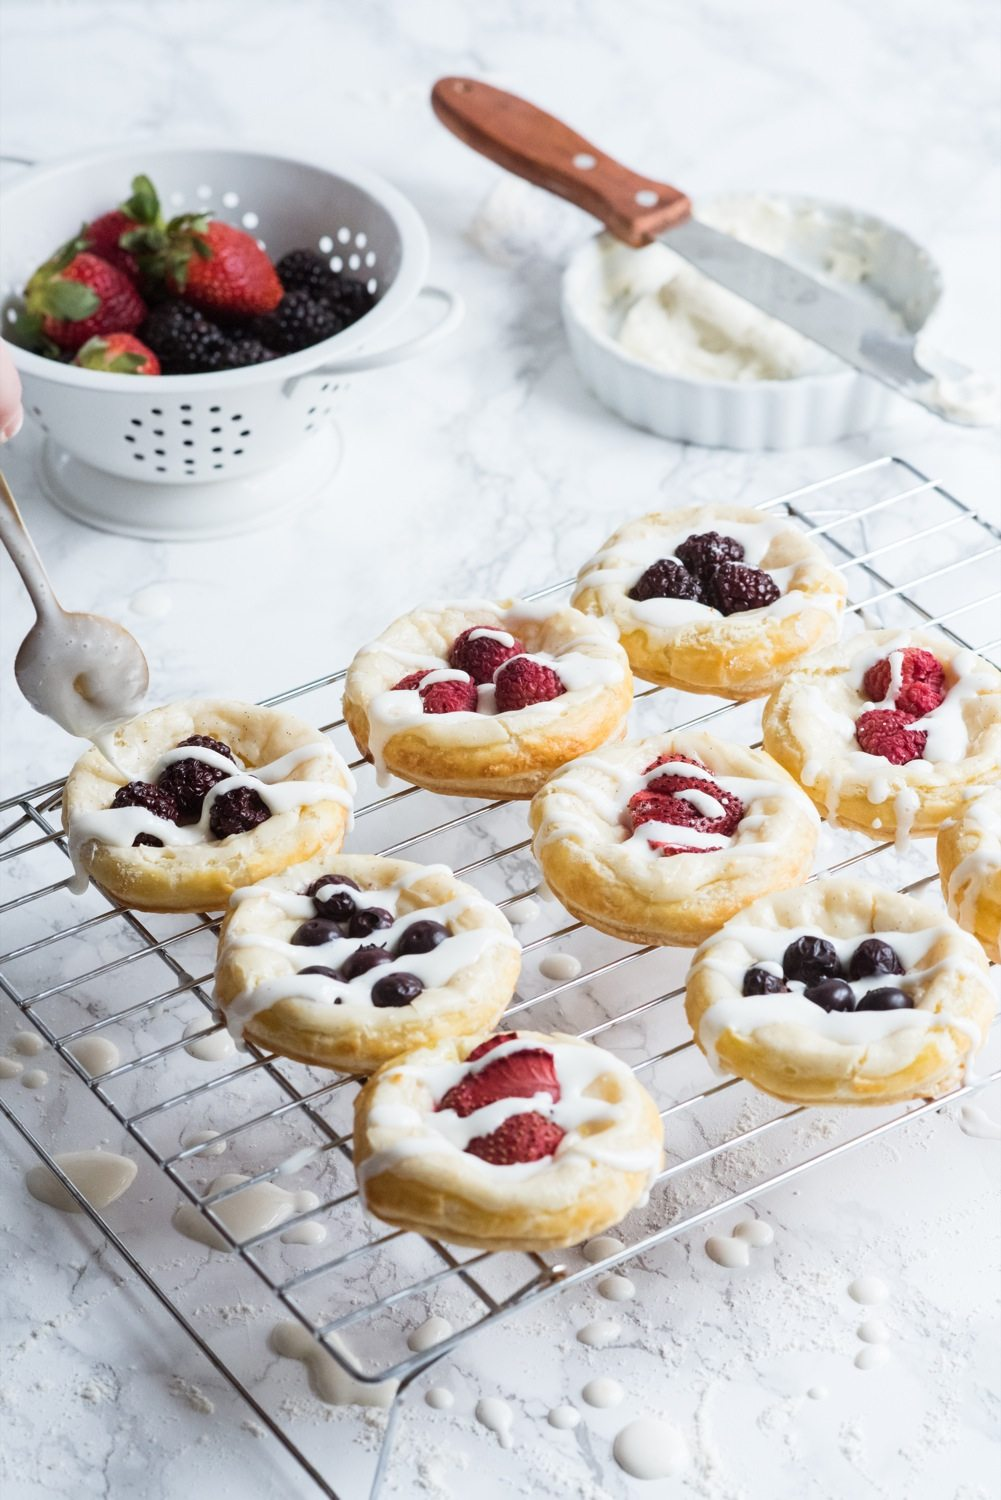 Berry + Cream Cheese Breakfast Pastries - The Sweetest Occasion